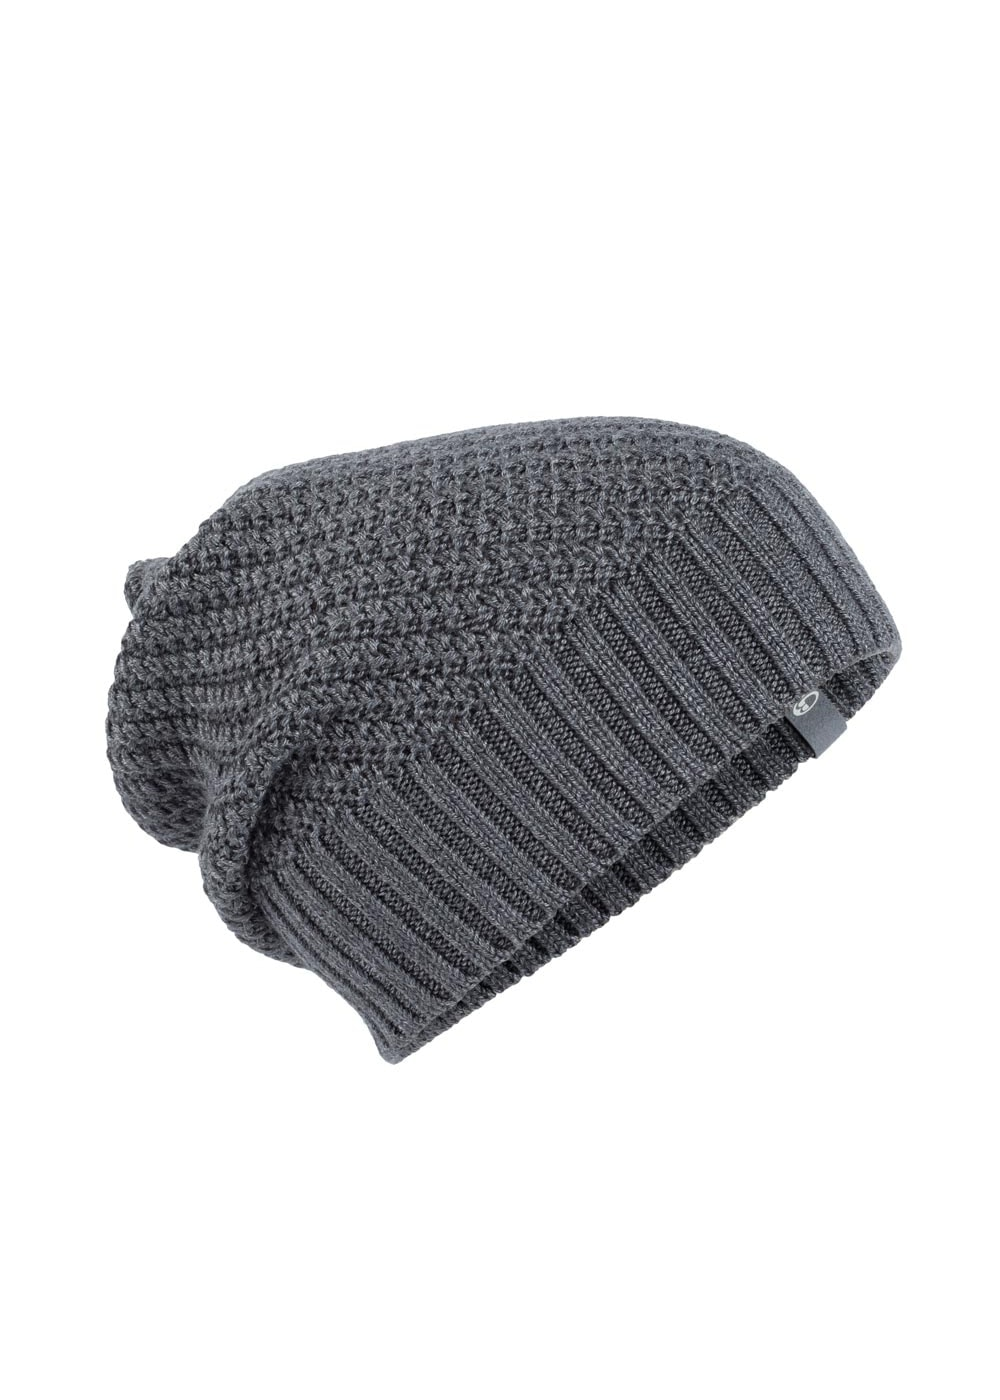 Icebreaker Skyline Slouch Beanie - Ladies from A Hume UK dd4d3c5593d